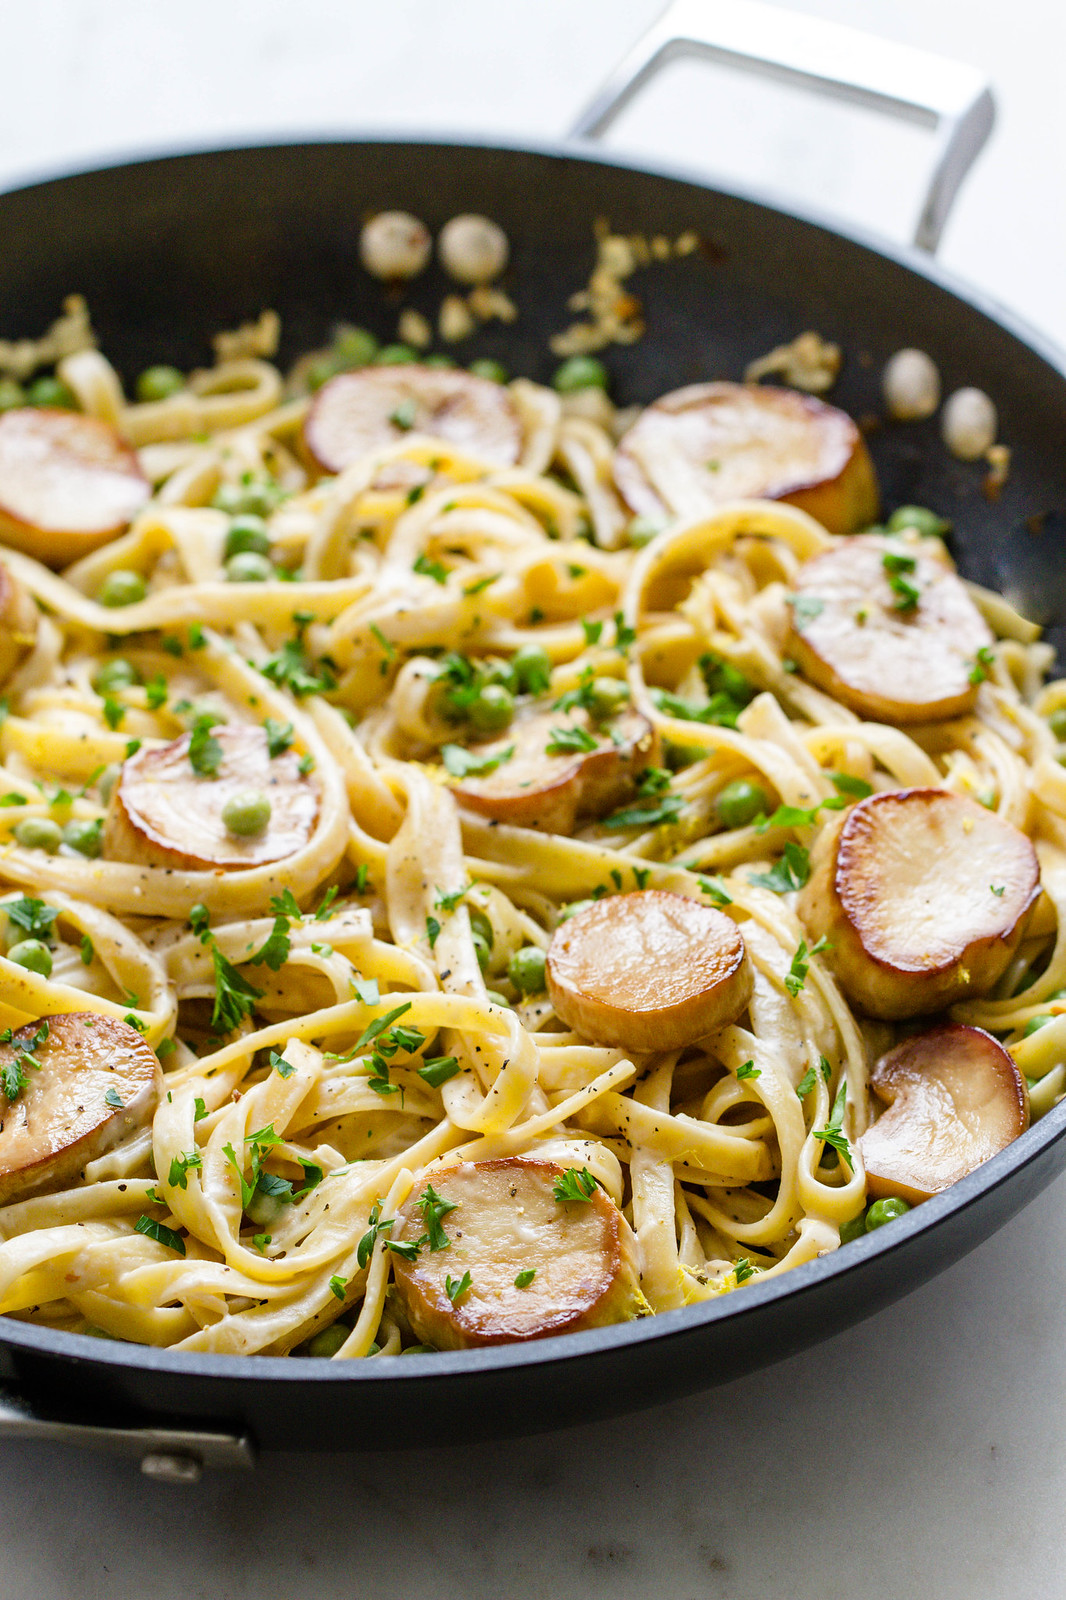 ONE-POT CREAMY FETTUCCINE + PEAS & KING OYSTER MUSHROOM 'SCALLOPS'